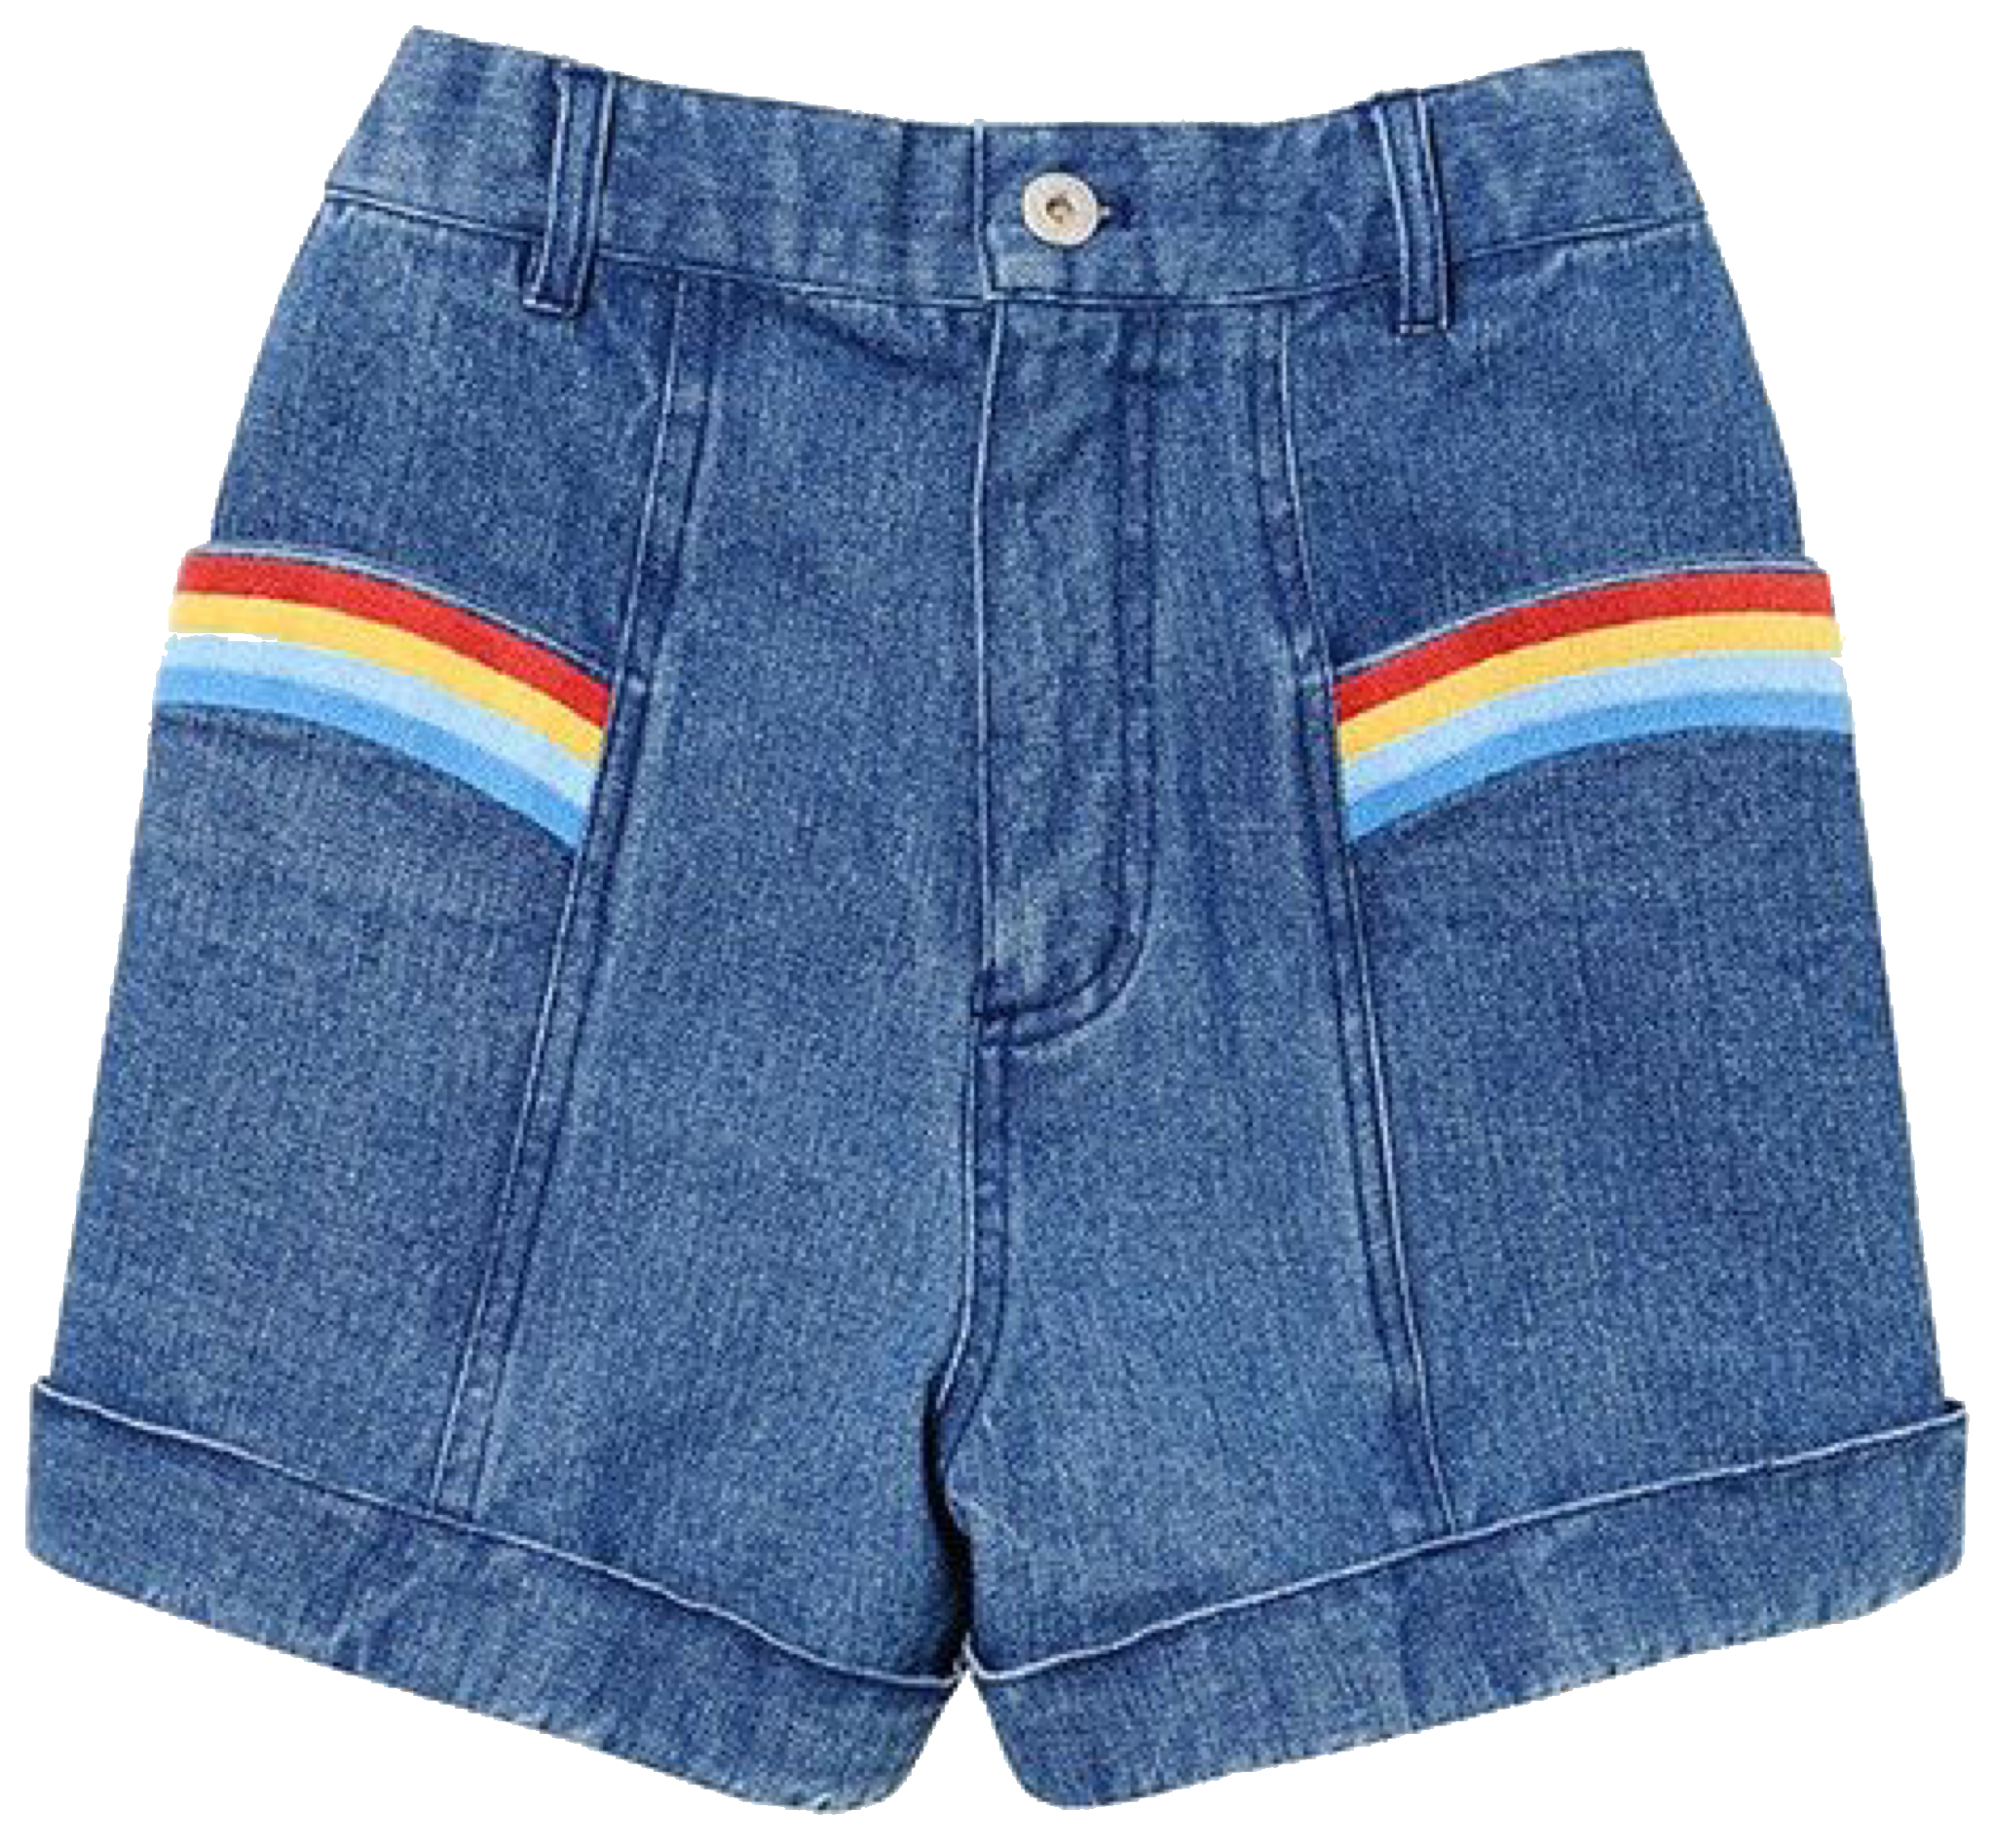 e2fb23bdcb4dd8 Blue Shorts, Denim Shorts, Boardshorts, Over The Rainbow, Jeans, Piece Of